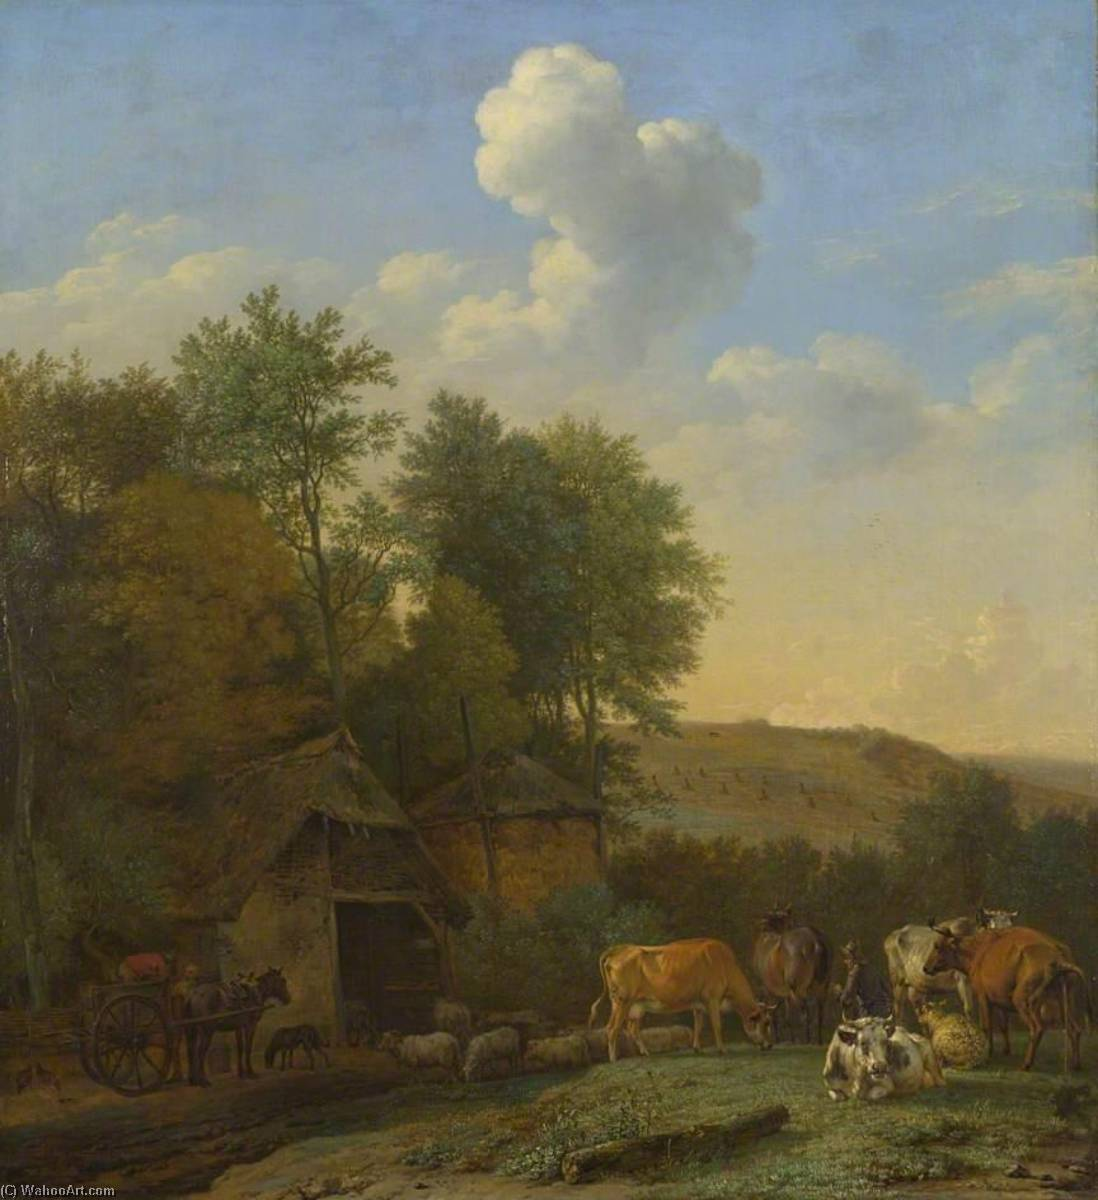 Landscape with Cows, Sheep and Horses by a Barn, Oil On Panel by Paulus Pietersz Potter (1625-1654, Netherlands)